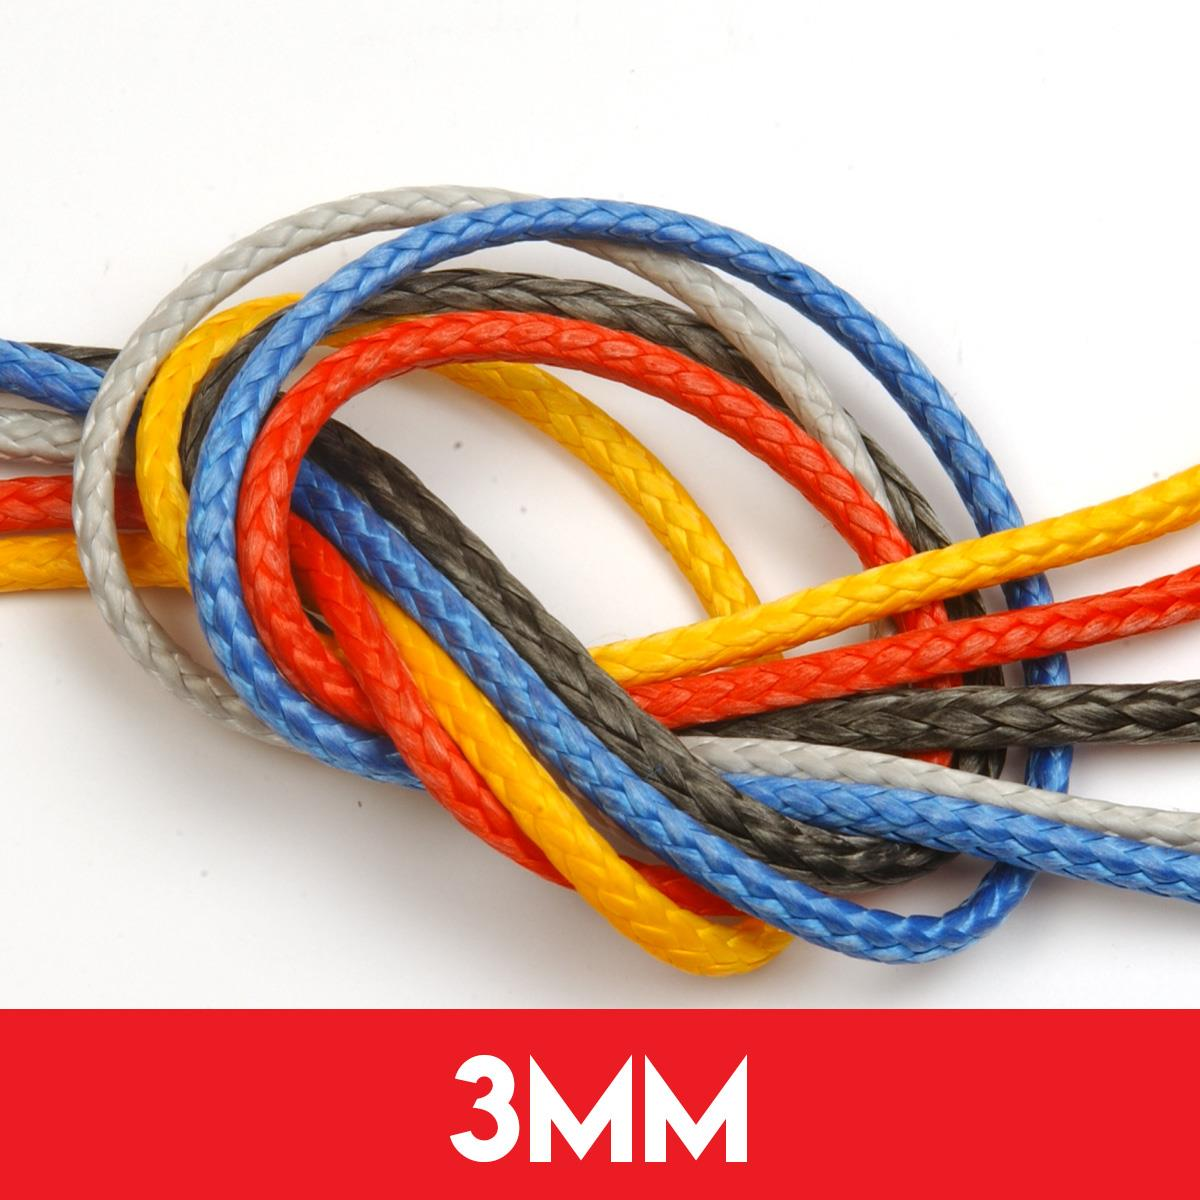 3mm Dyneema SK78 Compact Braid Rope